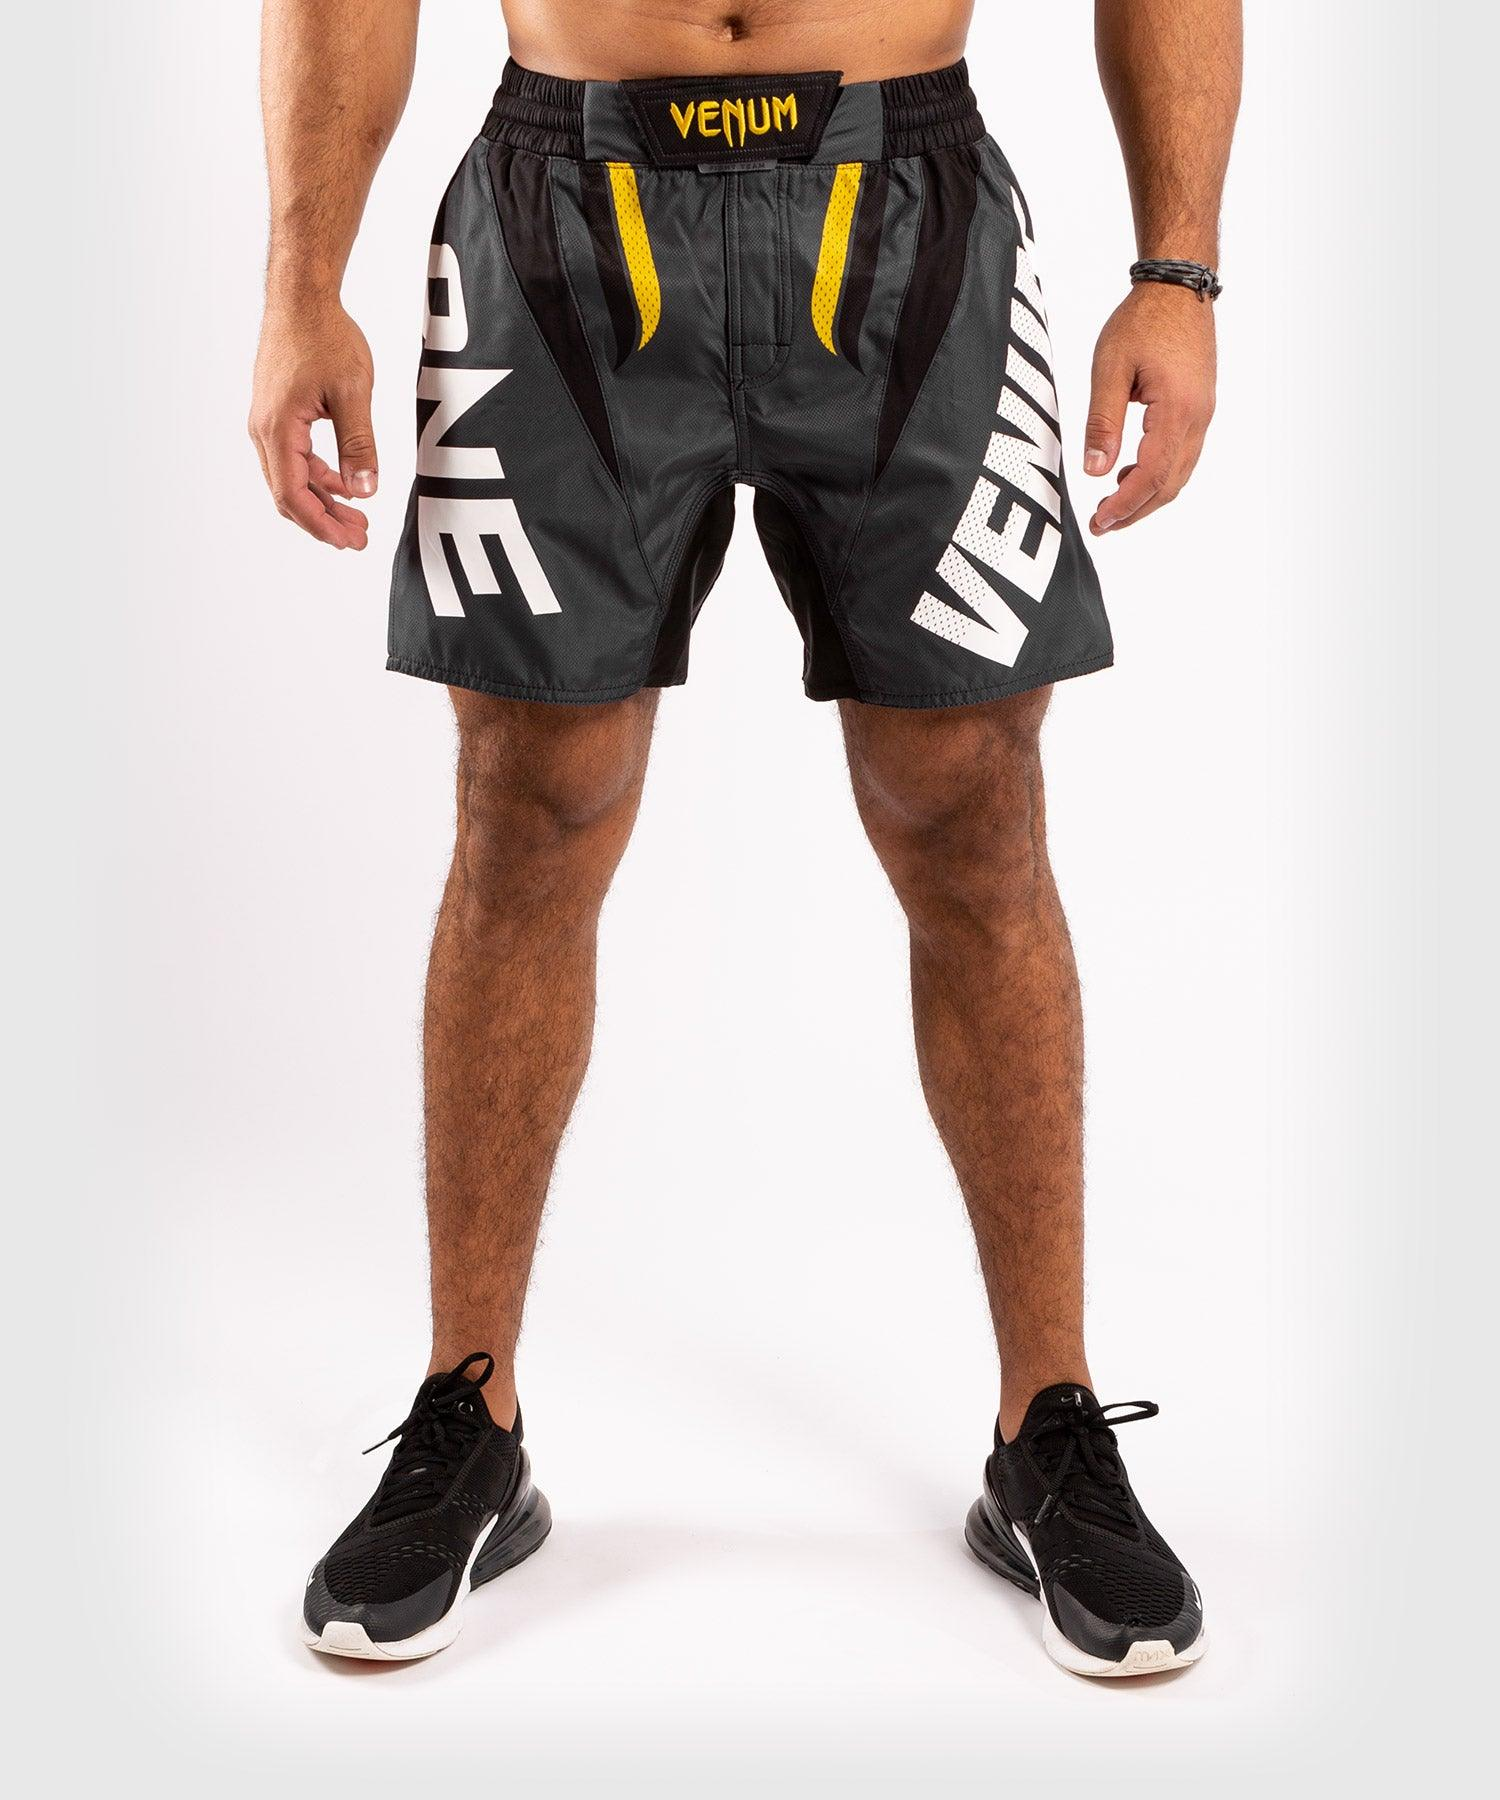 Venum ONE FC Impact Fightshorts - Grey/Yellow - picture 1